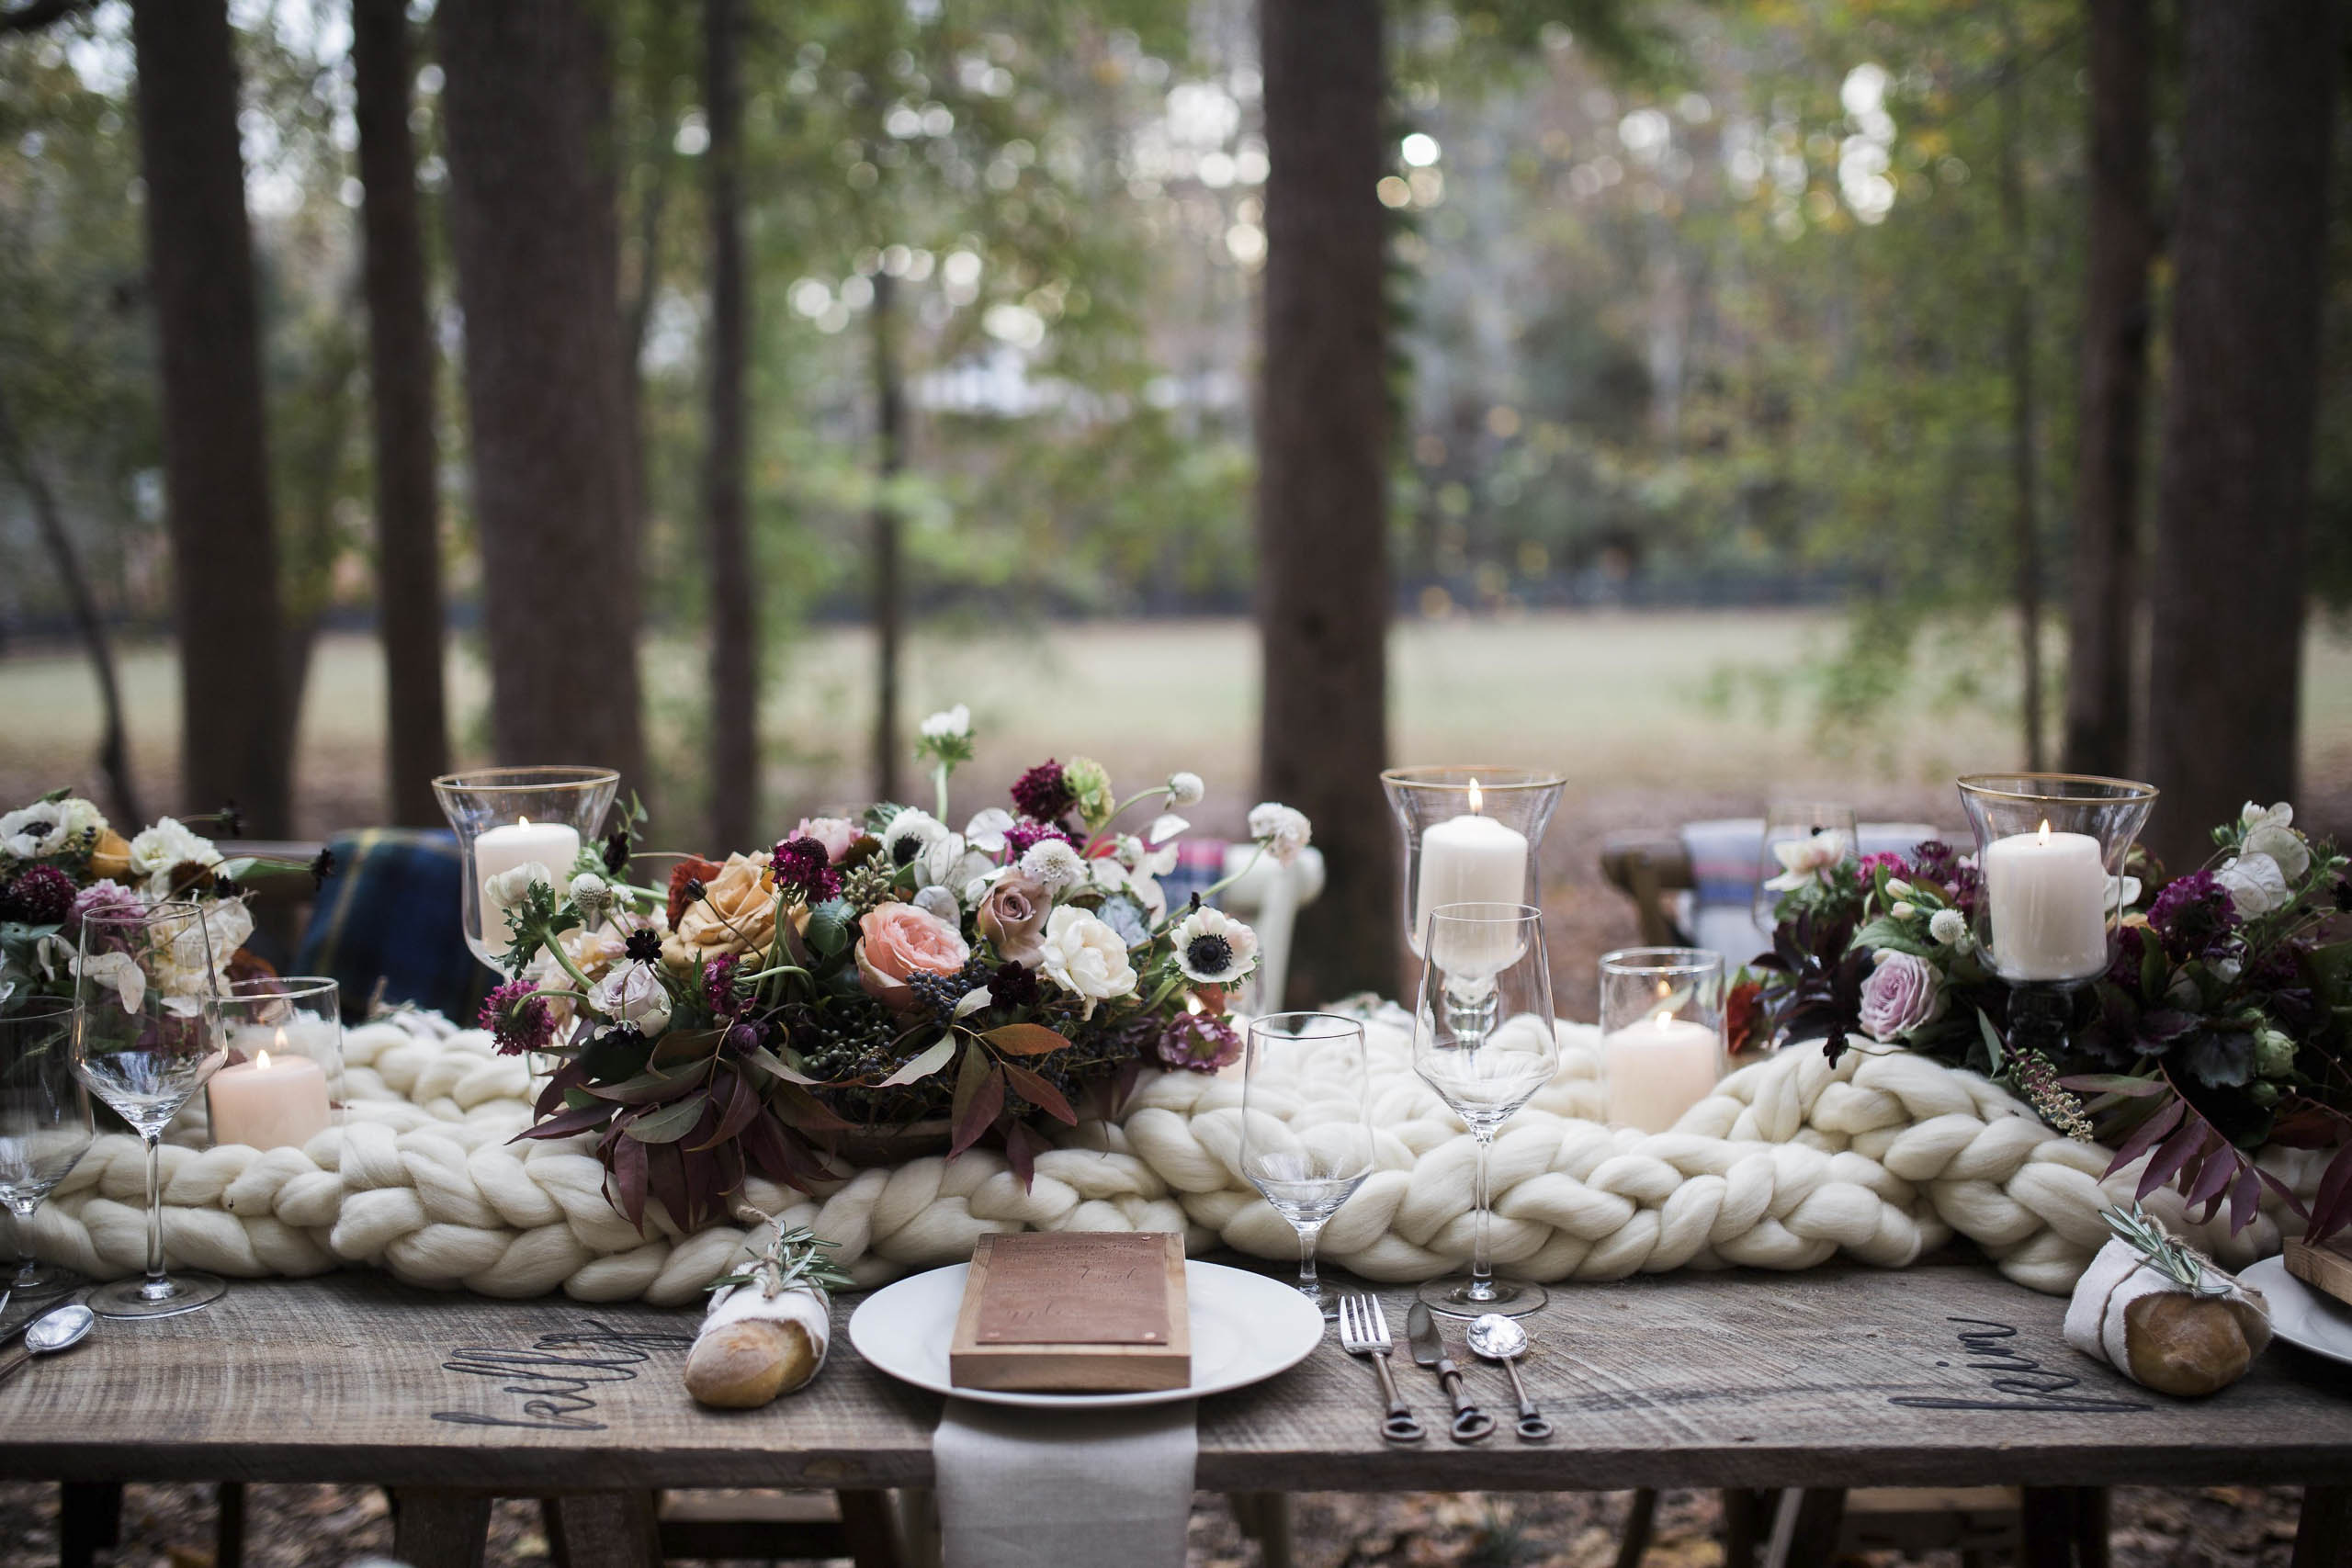 Rustic Elegance – Wood and Leather Menus